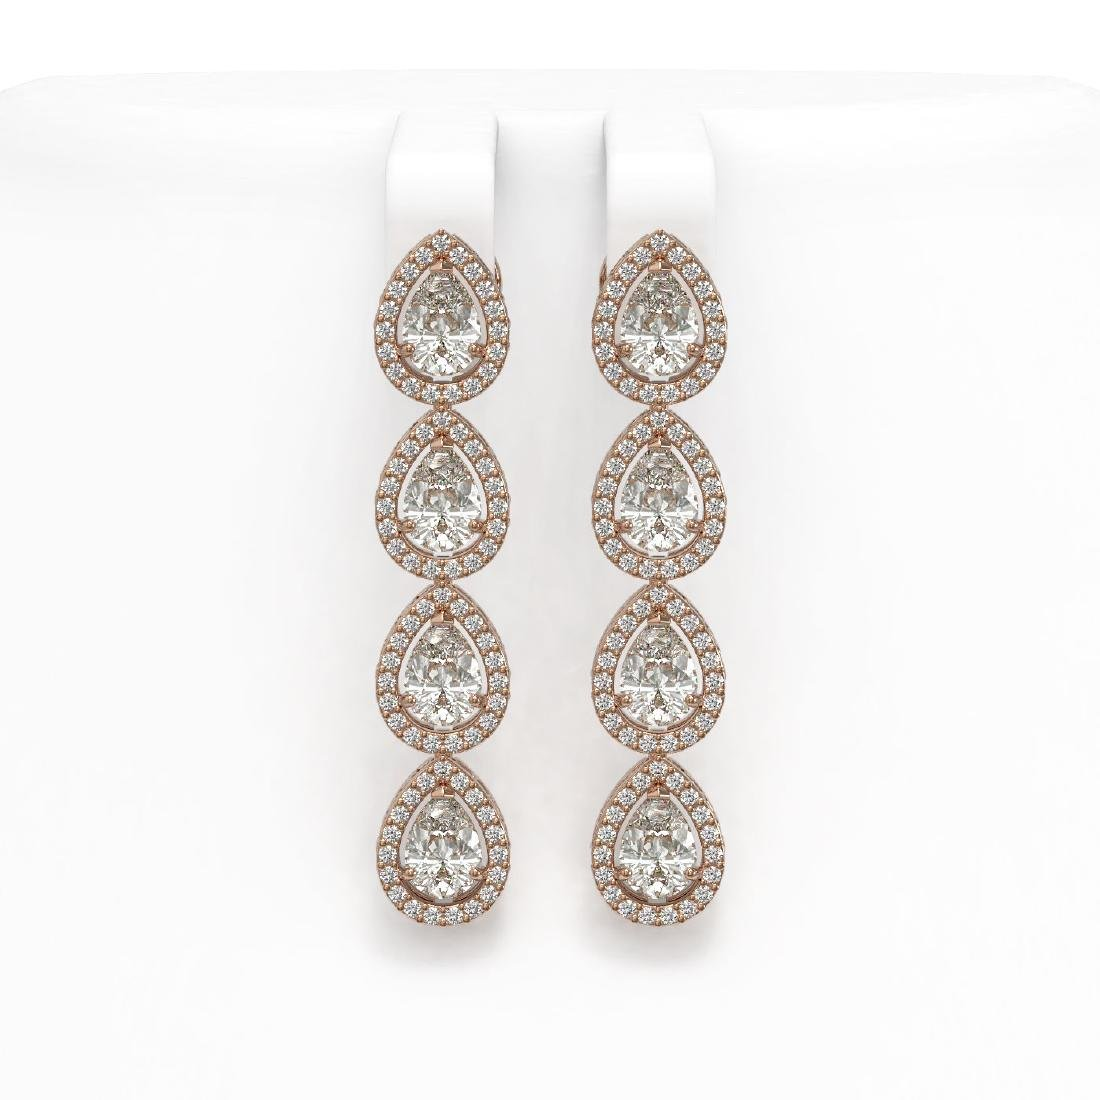 6.01 CTW Pear Diamond Designer Earrings 18K Rose Gold